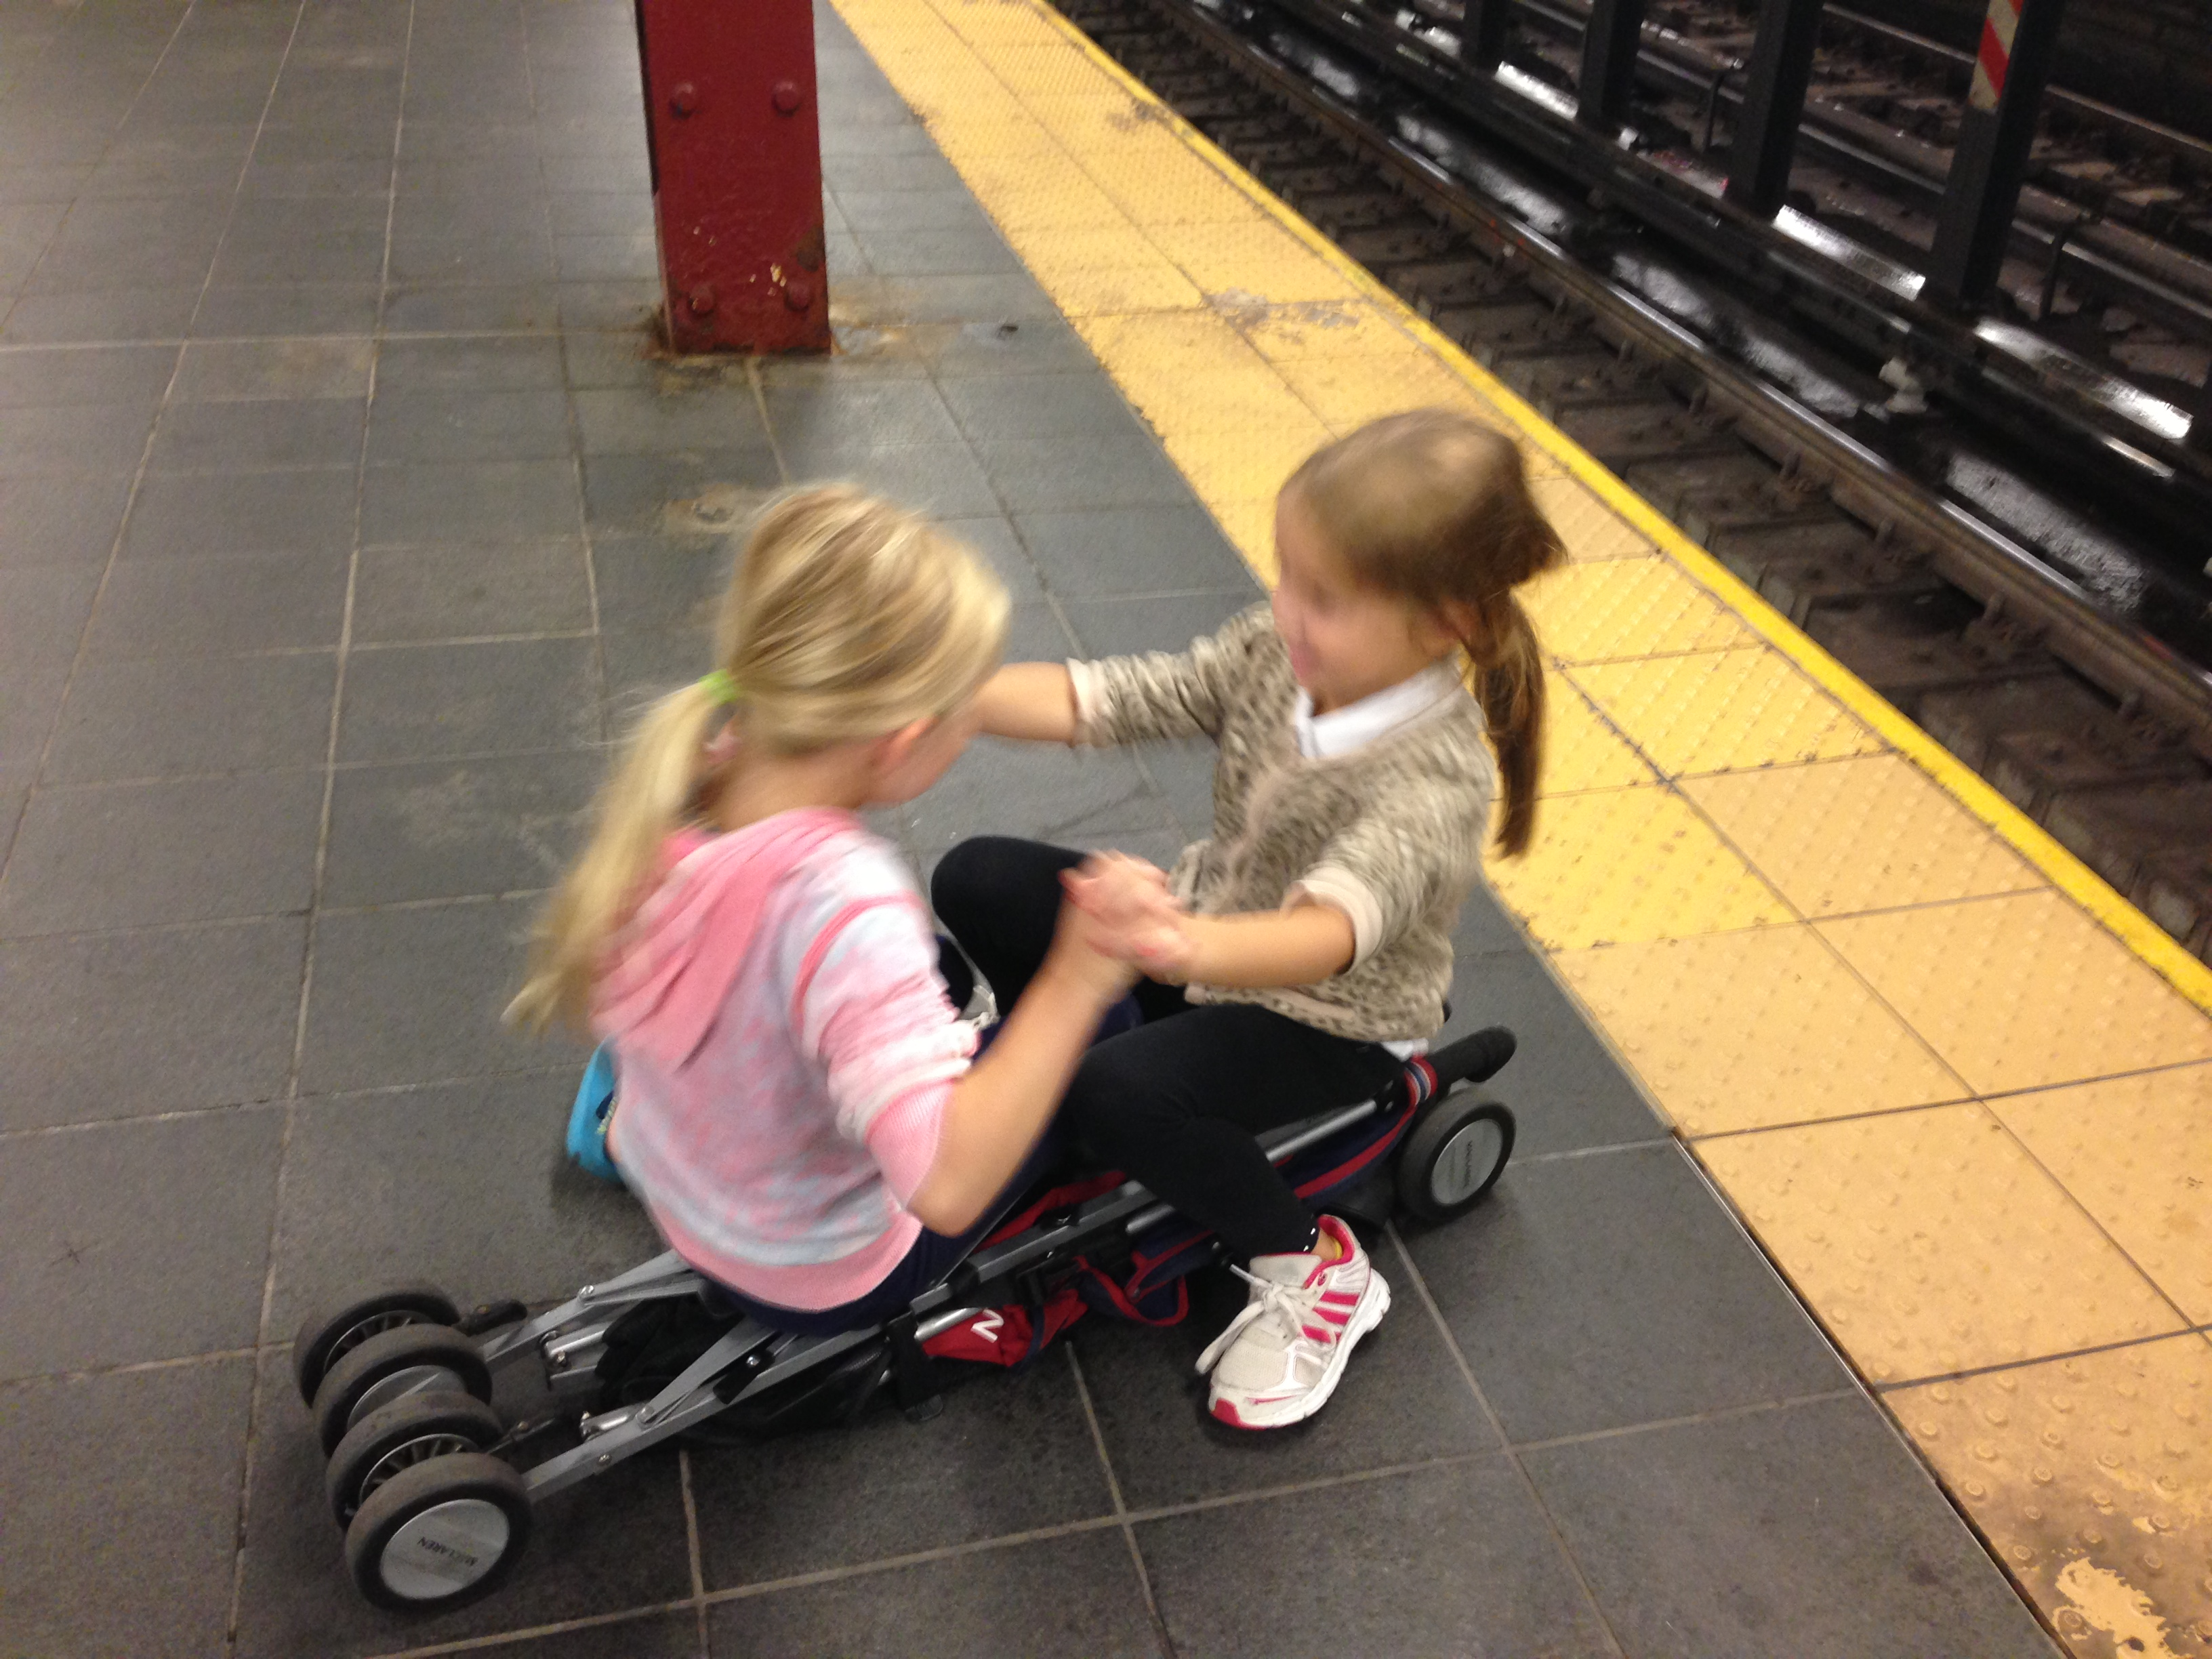 NYC subway, kids on the subway, travel, New York City travel